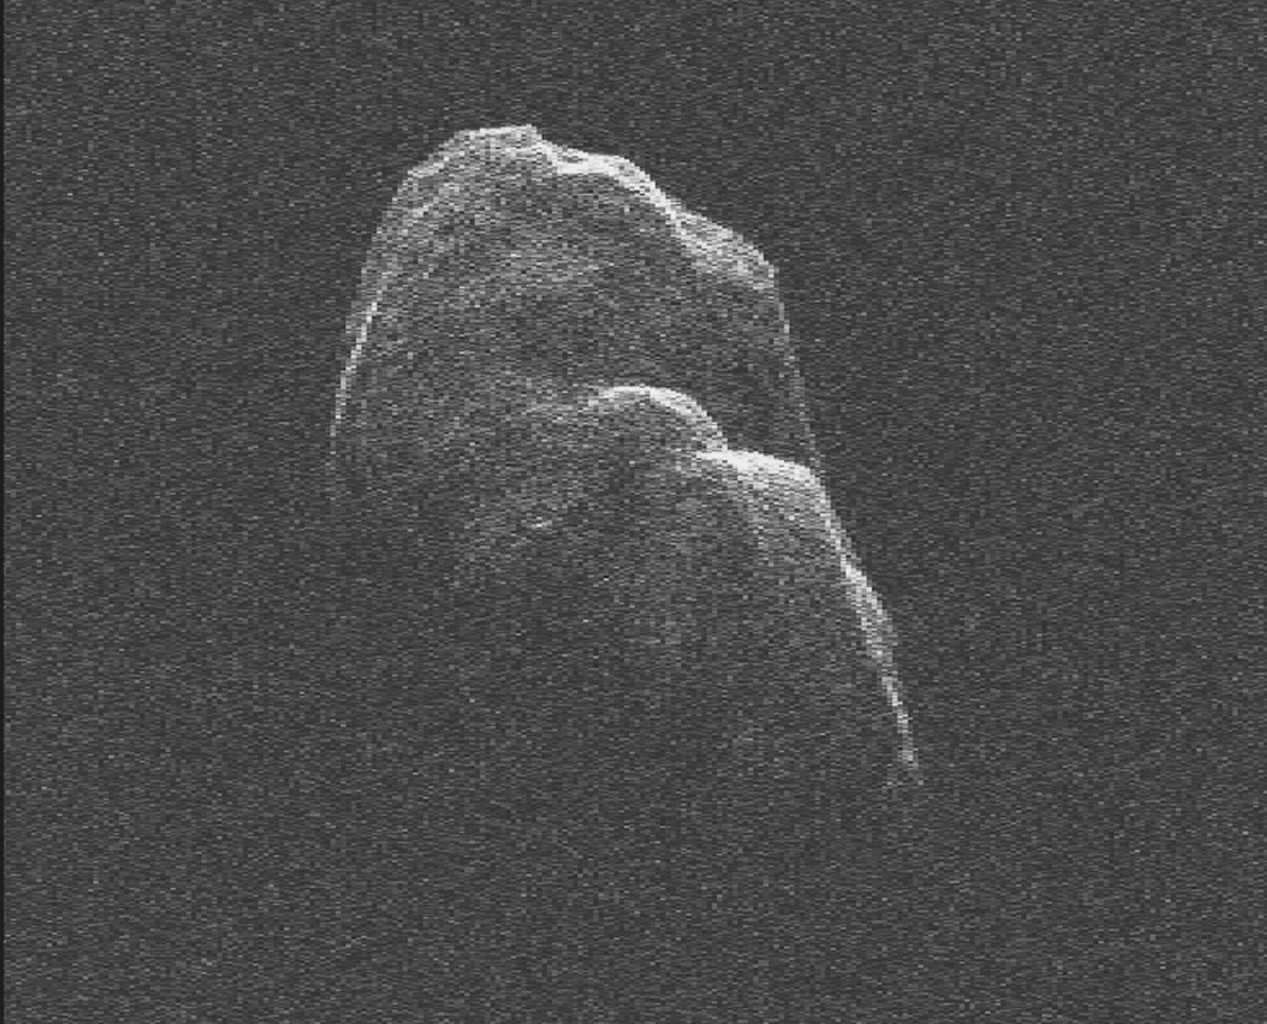 This image of asteroid Toutatis was generated with data collected using NASA's Deep Space Network antenna at Goldstone, Calif., on Dec. 12 and 13, 2012 and indicates that it is an elongated, irregularly shaped object with ridges and perhaps craters.